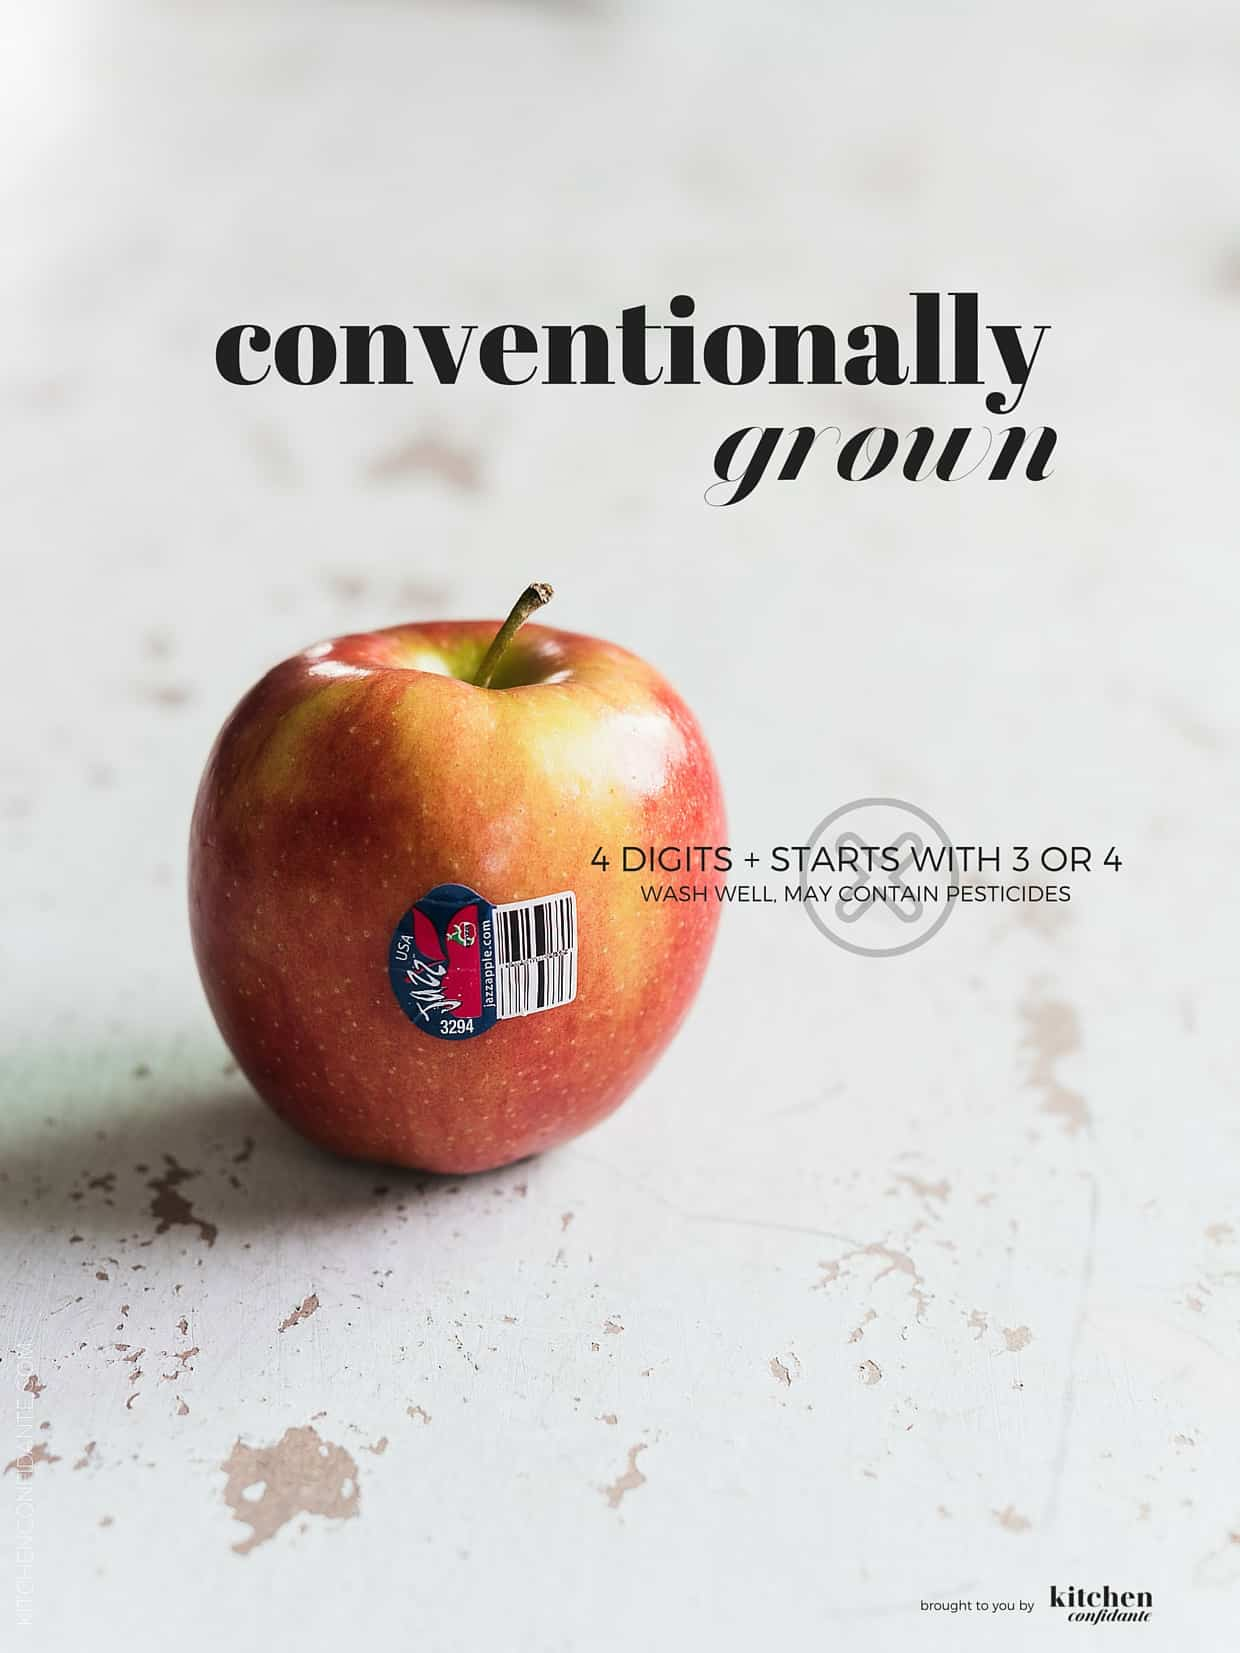 Fresh apple with conventionally grown PLU code on label.